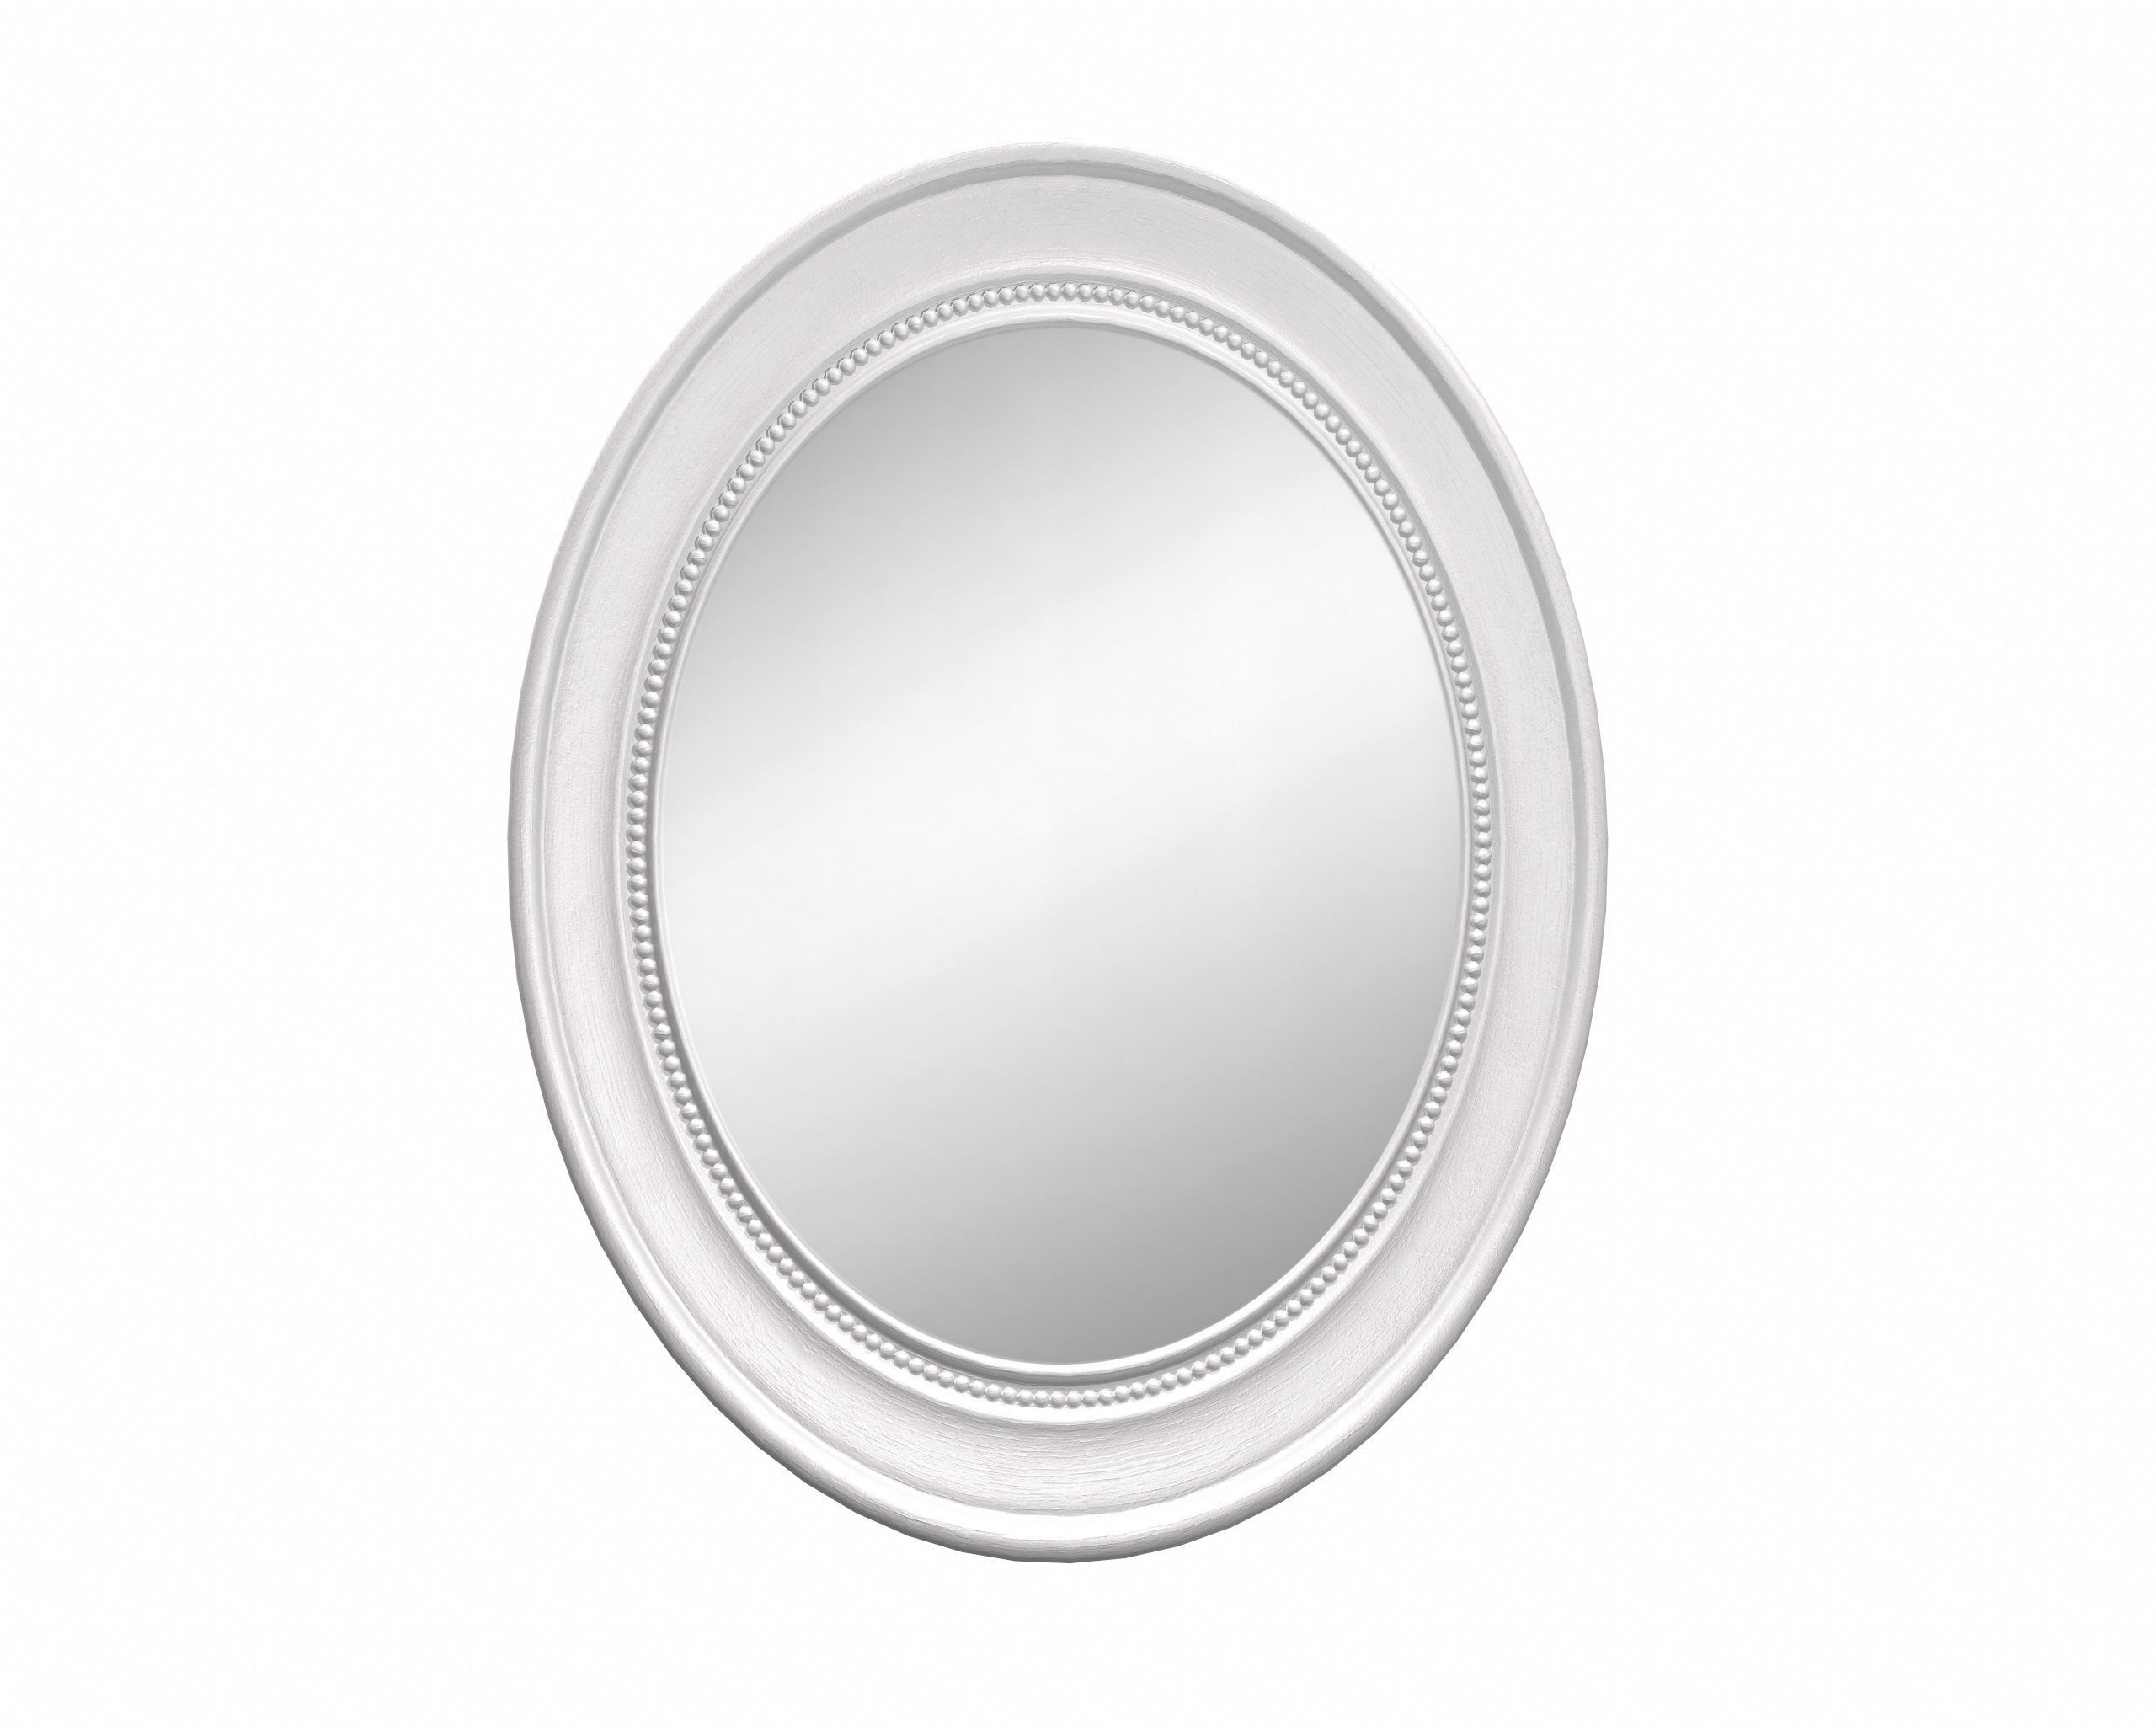 Oval Wooden Wall Mirror | 3D Model Throughout Oval Wood Wall Mirrors (View 21 of 30)